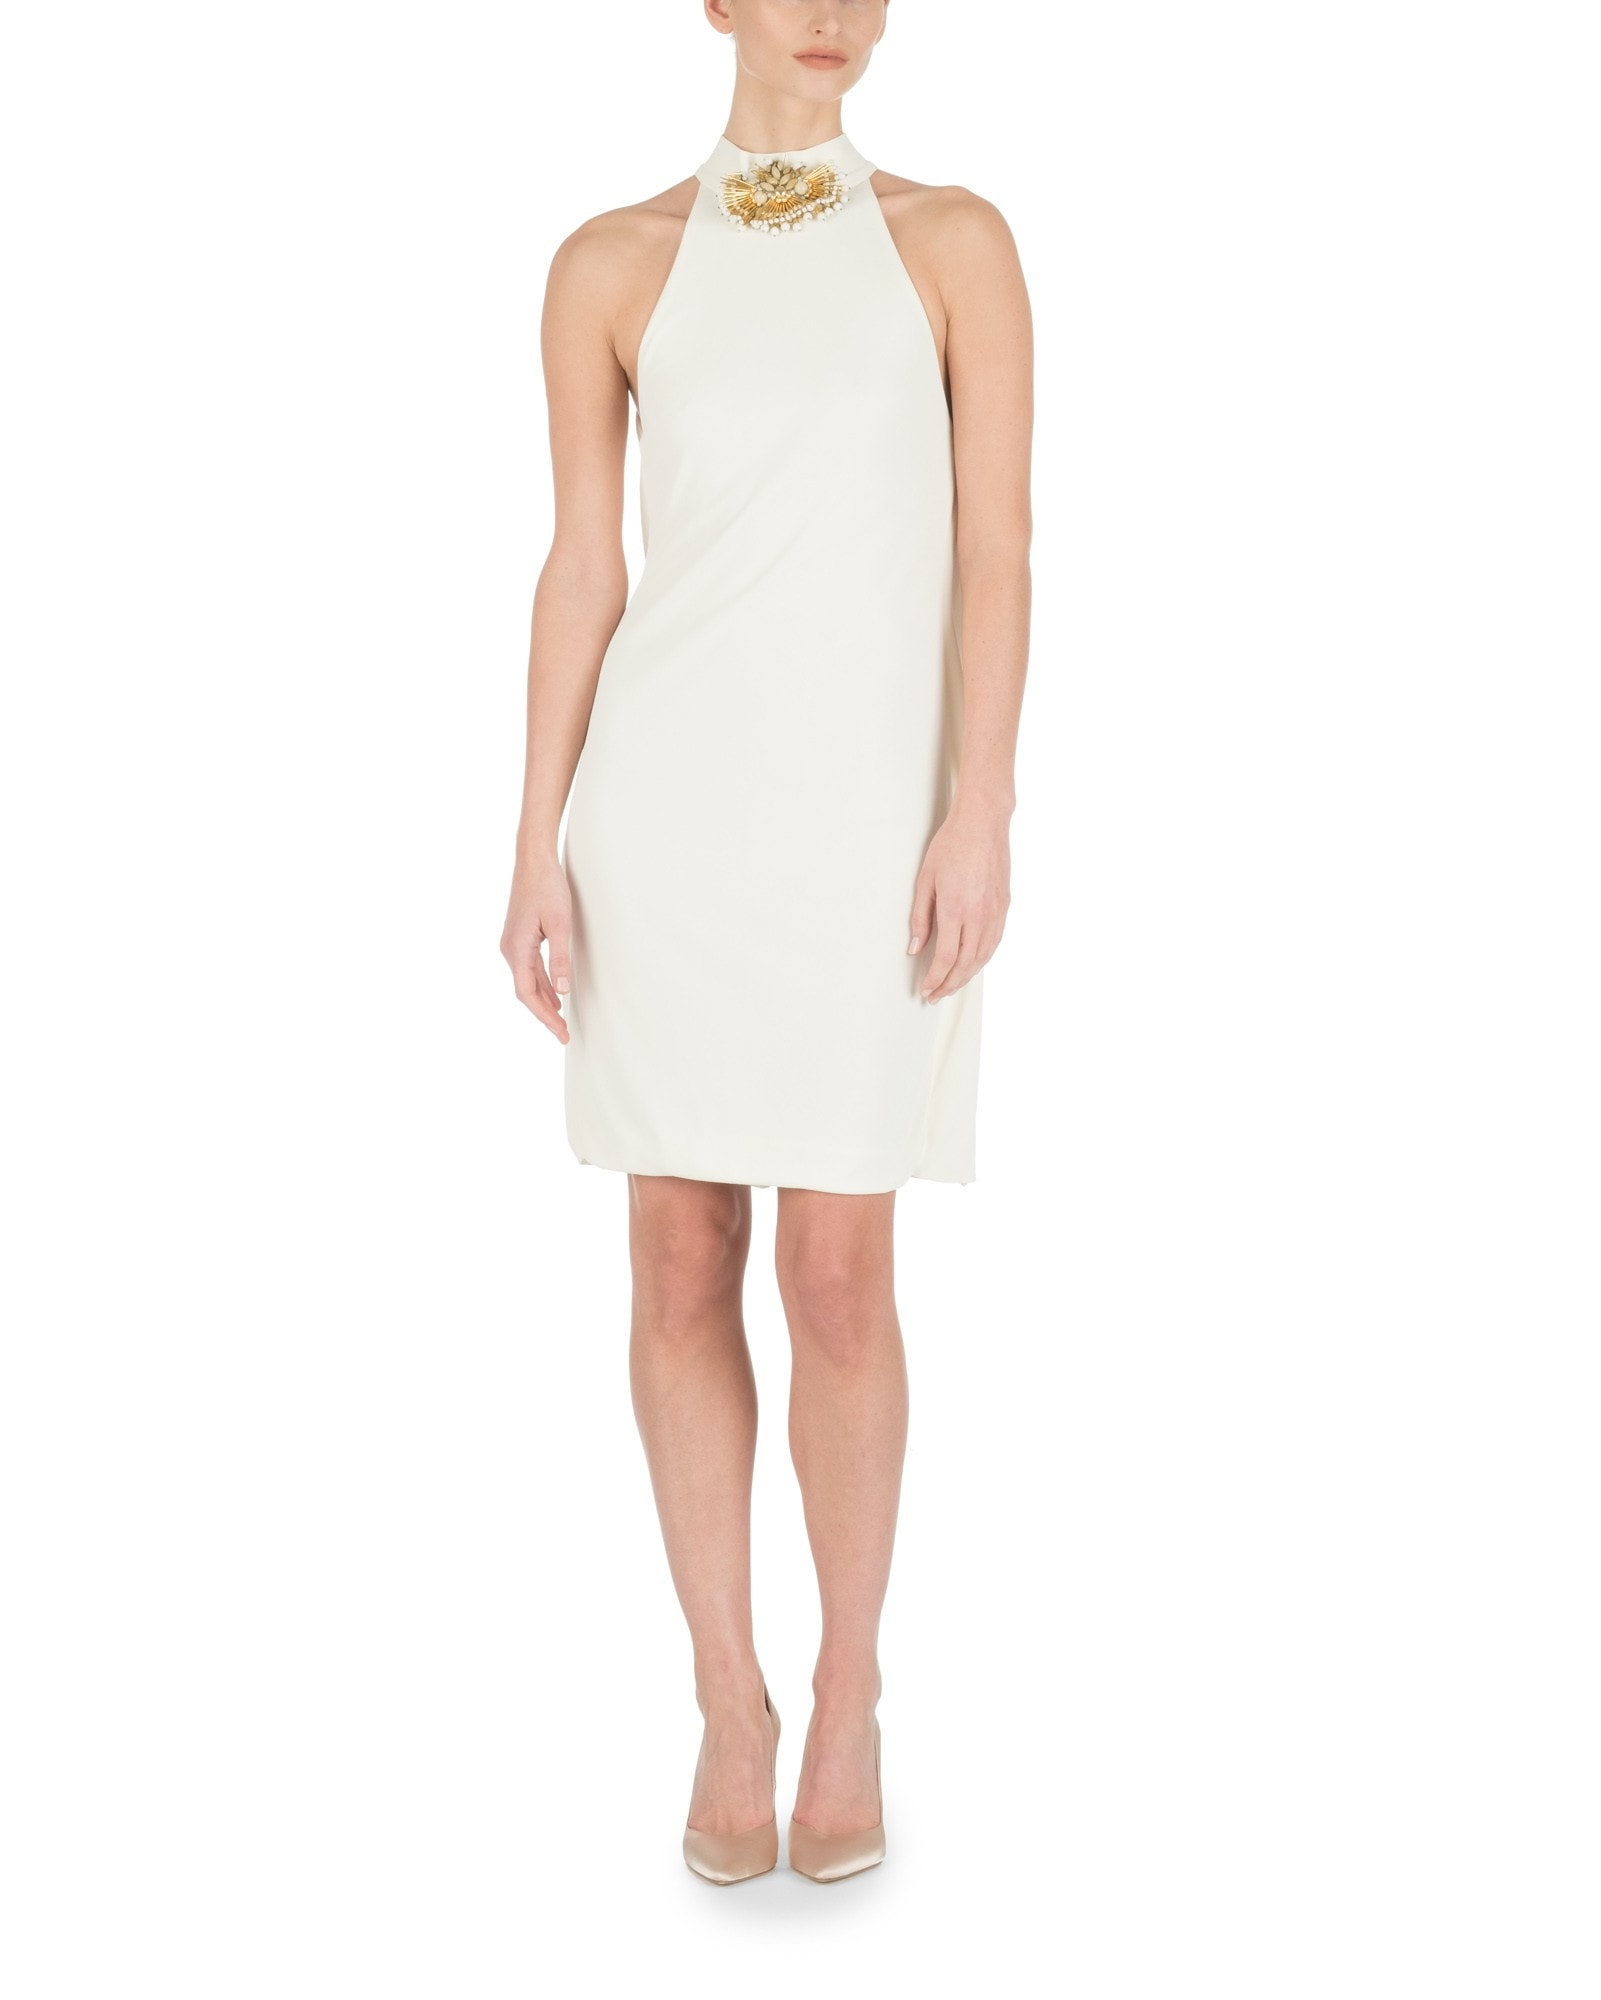 HIGH NECK IVORY MINI DRESS